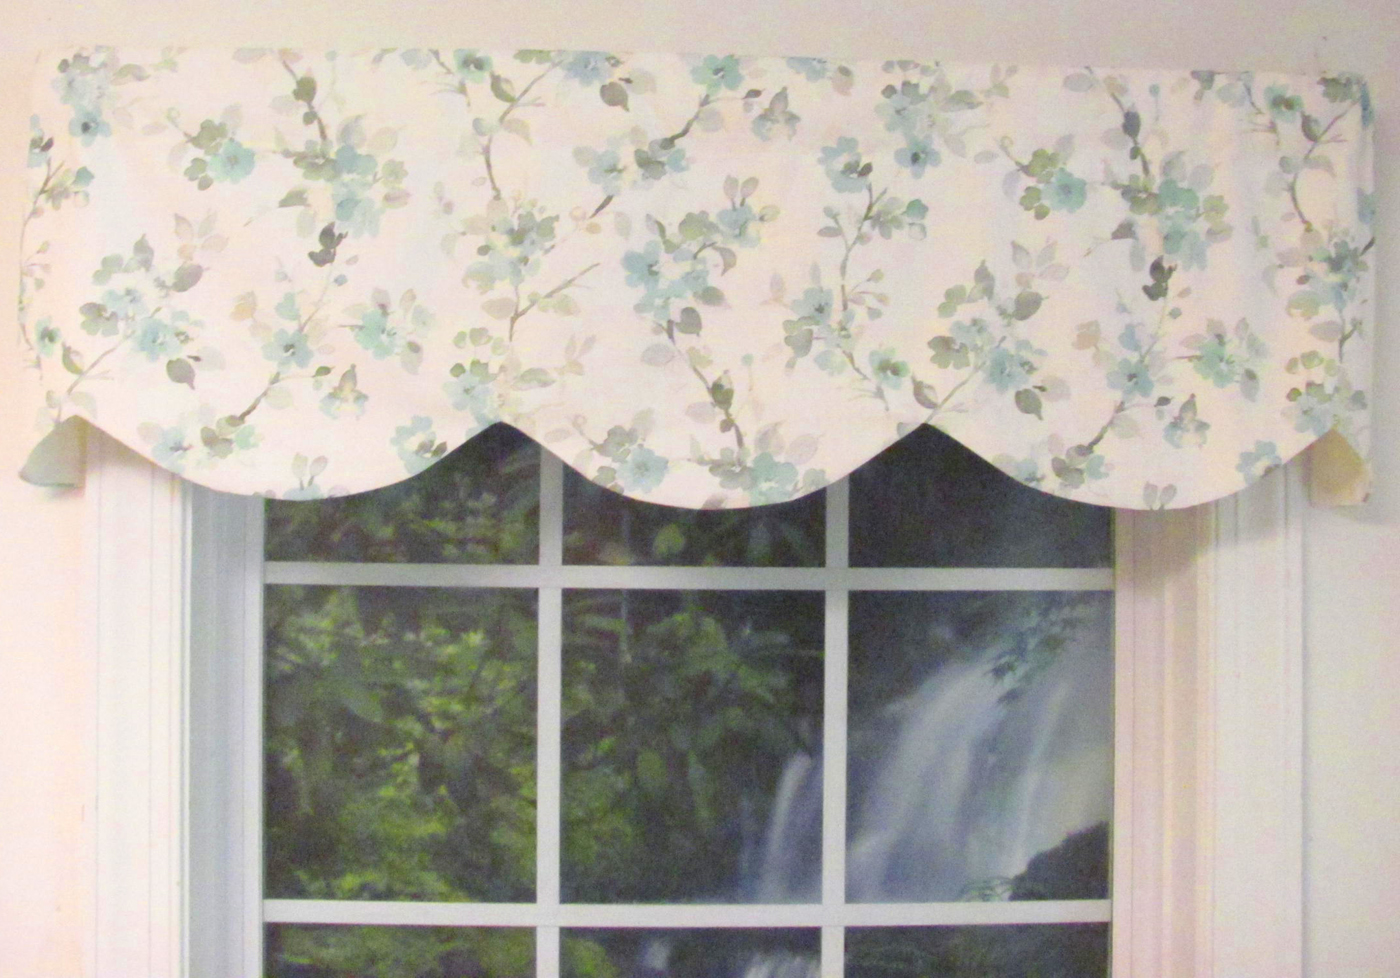 design ideas wood cornice designs t board window diy wooden shades valance duette